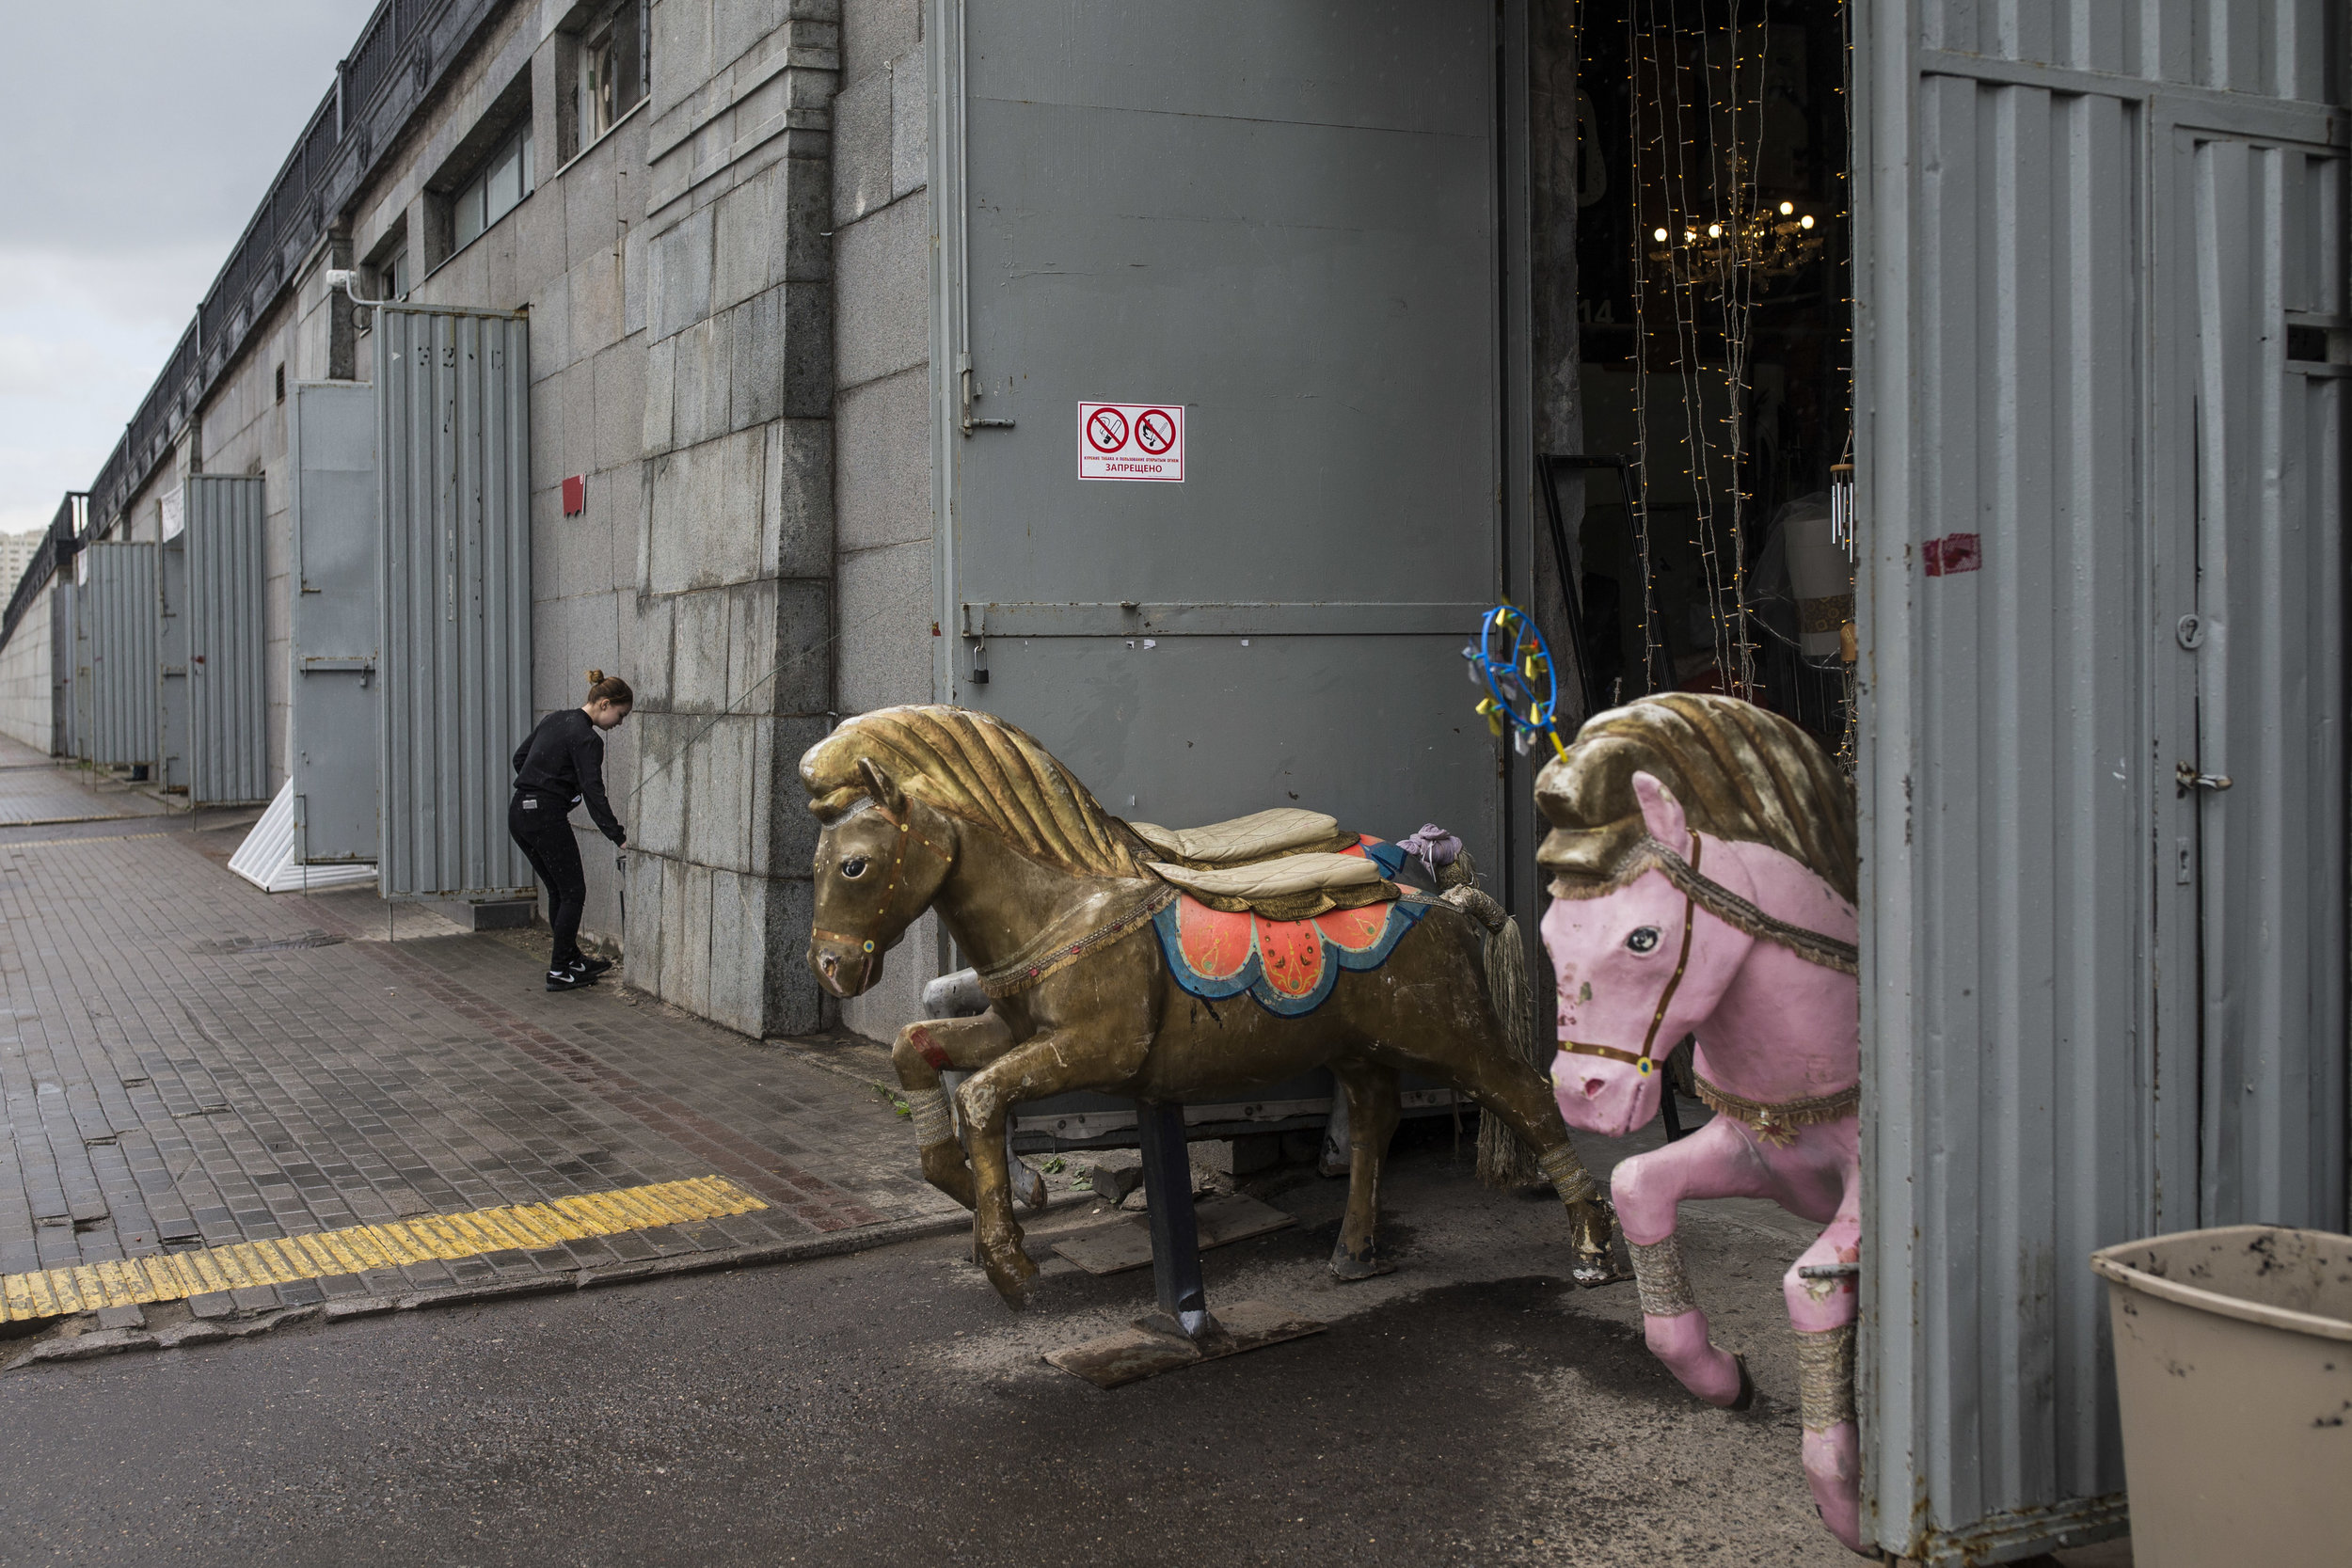 Old caroussel horse looks out of a junk store in Moscow